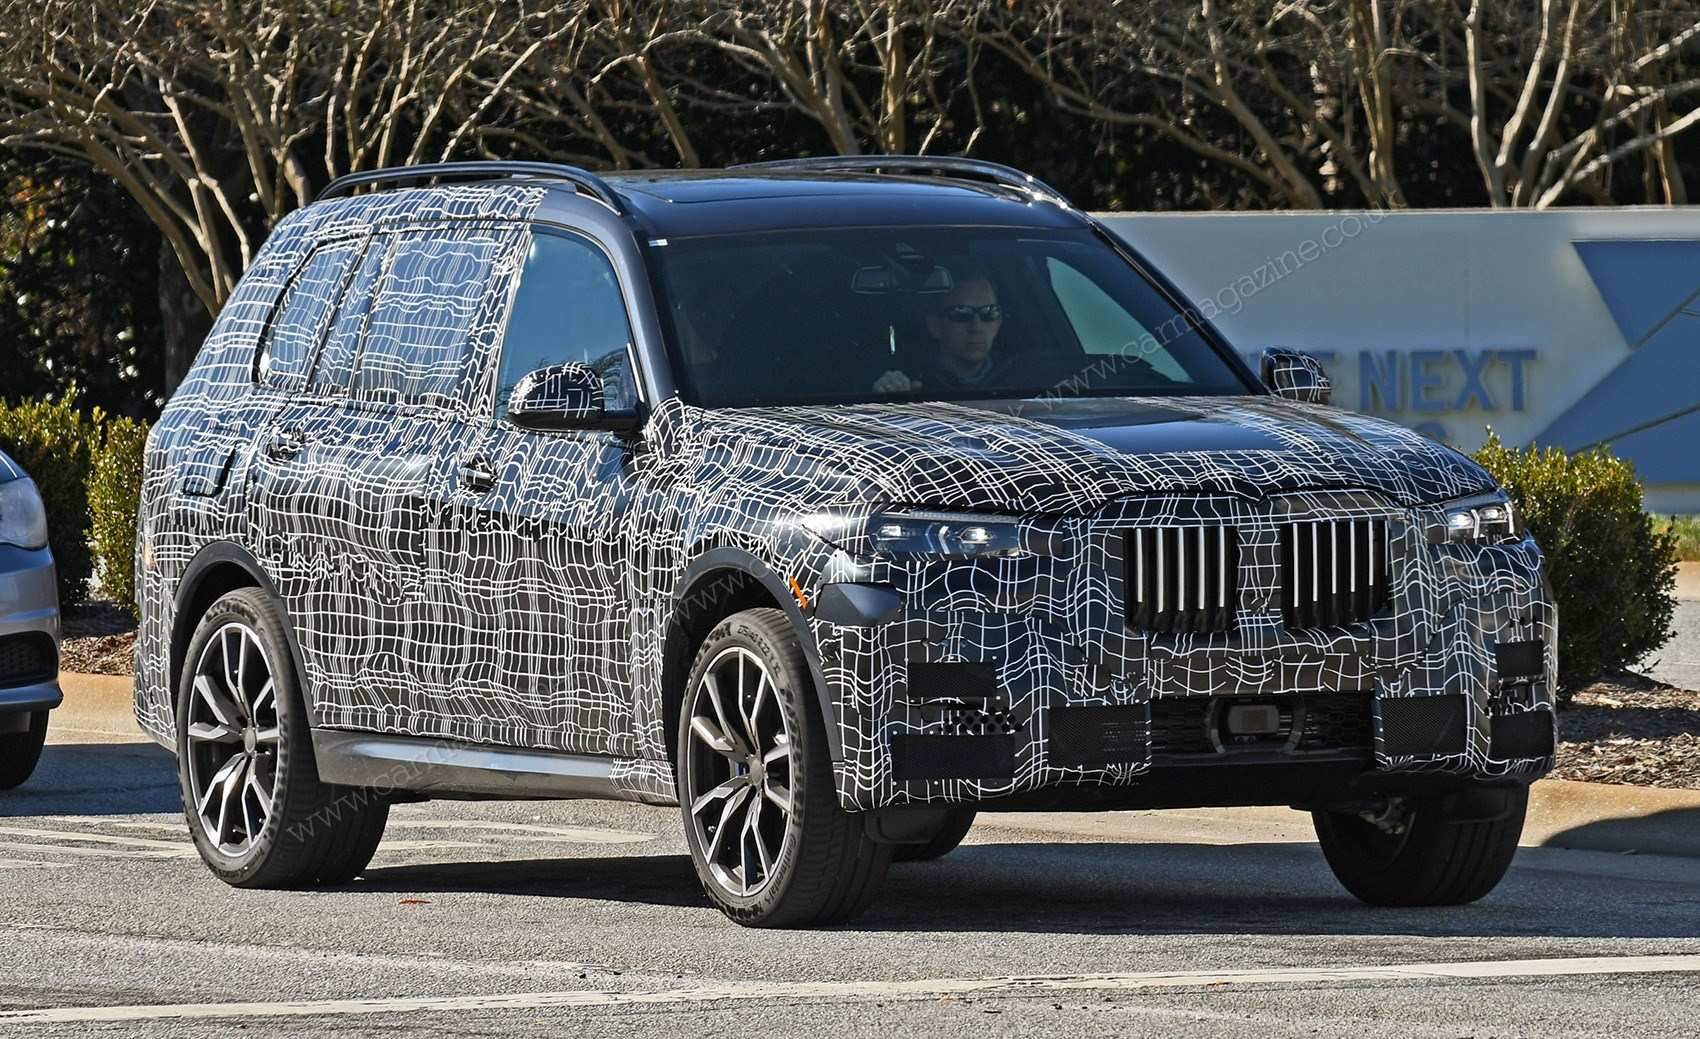 54 Great The Bmw New Suv 2019 Spy Shoot Configurations for The Bmw New Suv 2019 Spy Shoot